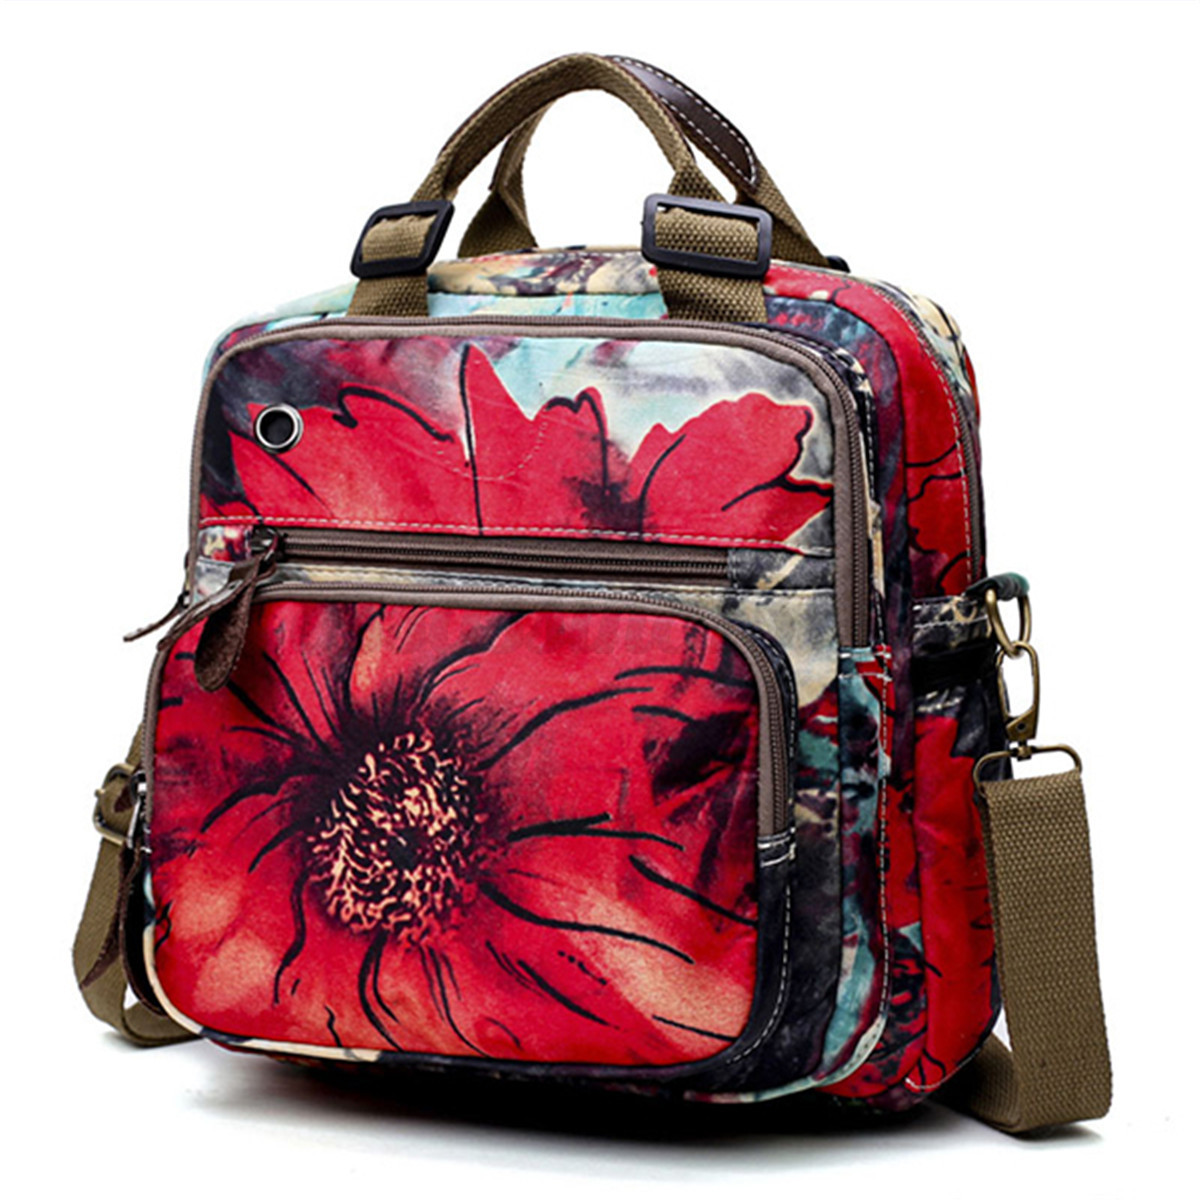 National Style Outdoor Flower Pattern Shoulder Crossbody Bag